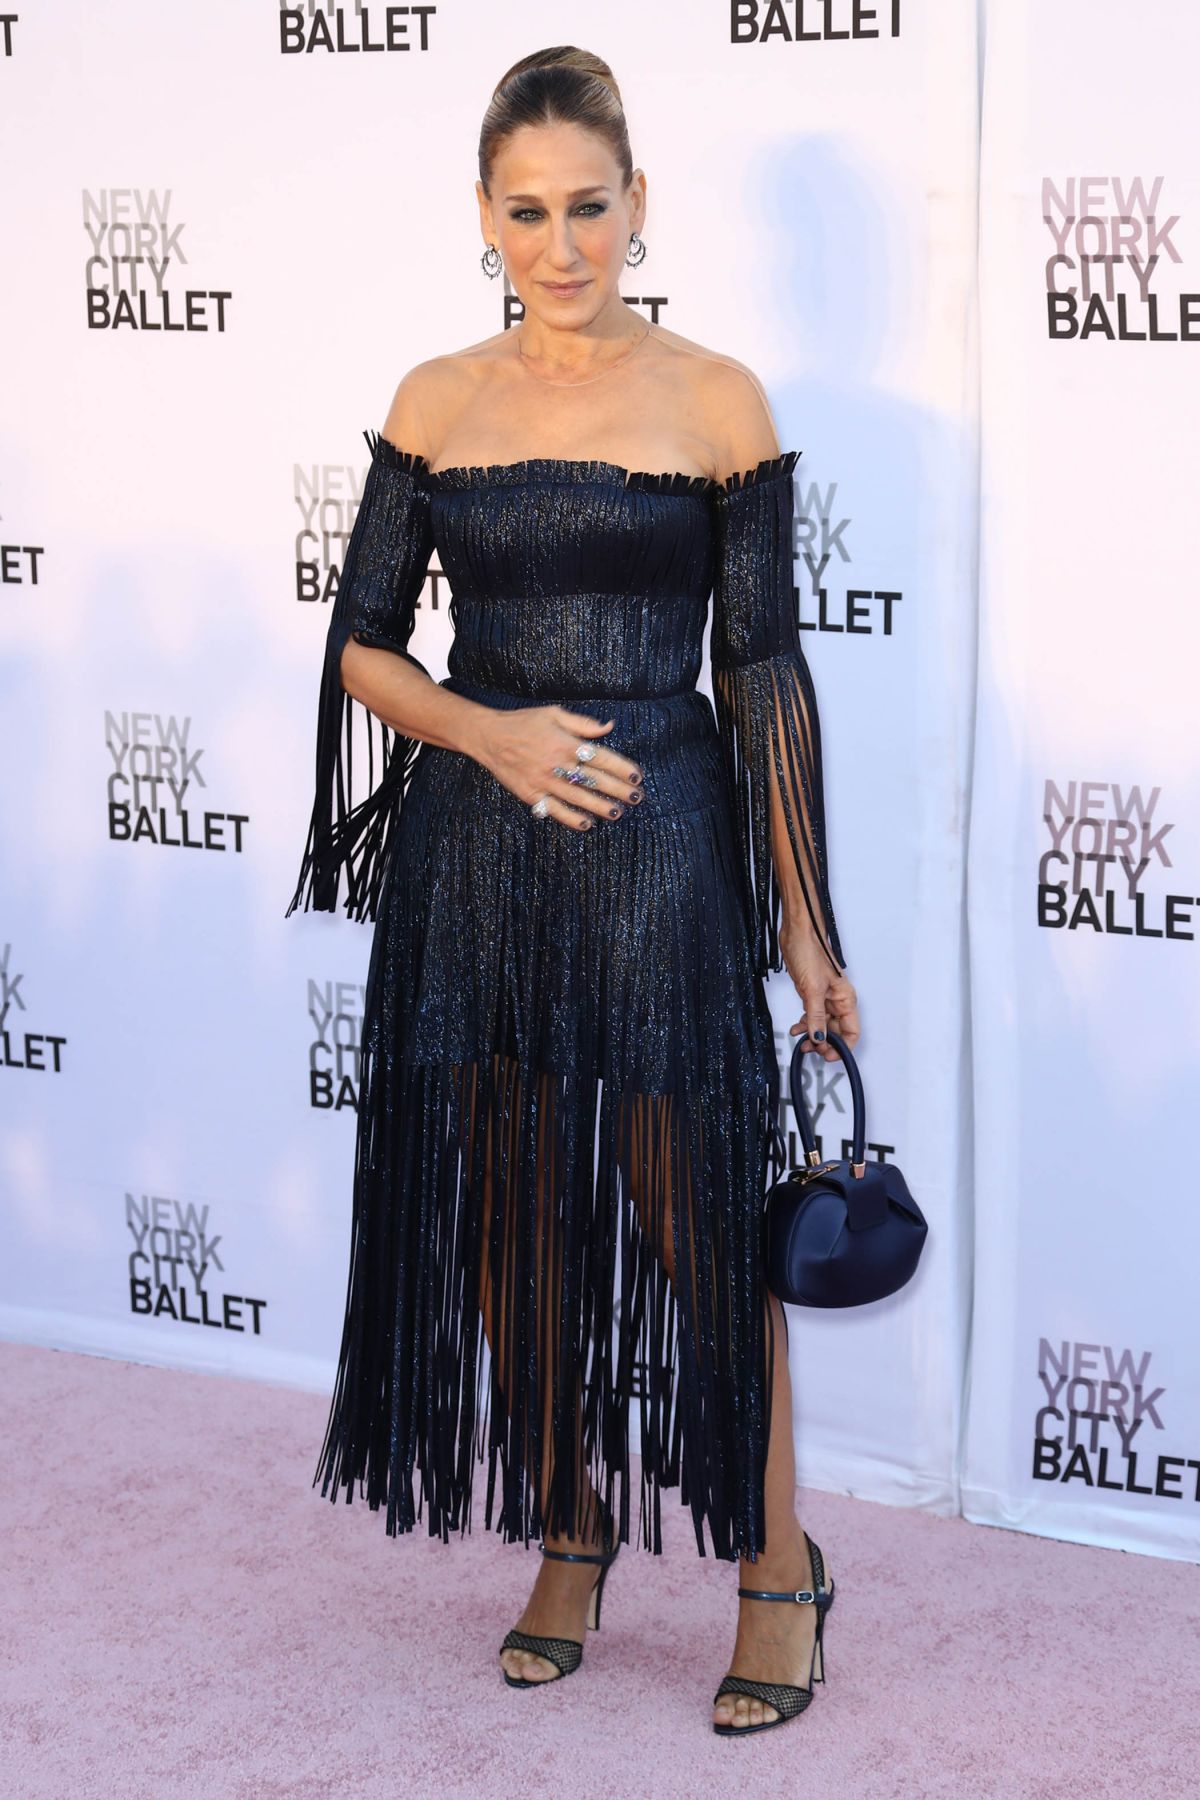 SARAH JESSICA PARKER at New York City Ballet's 2017 Fall ...